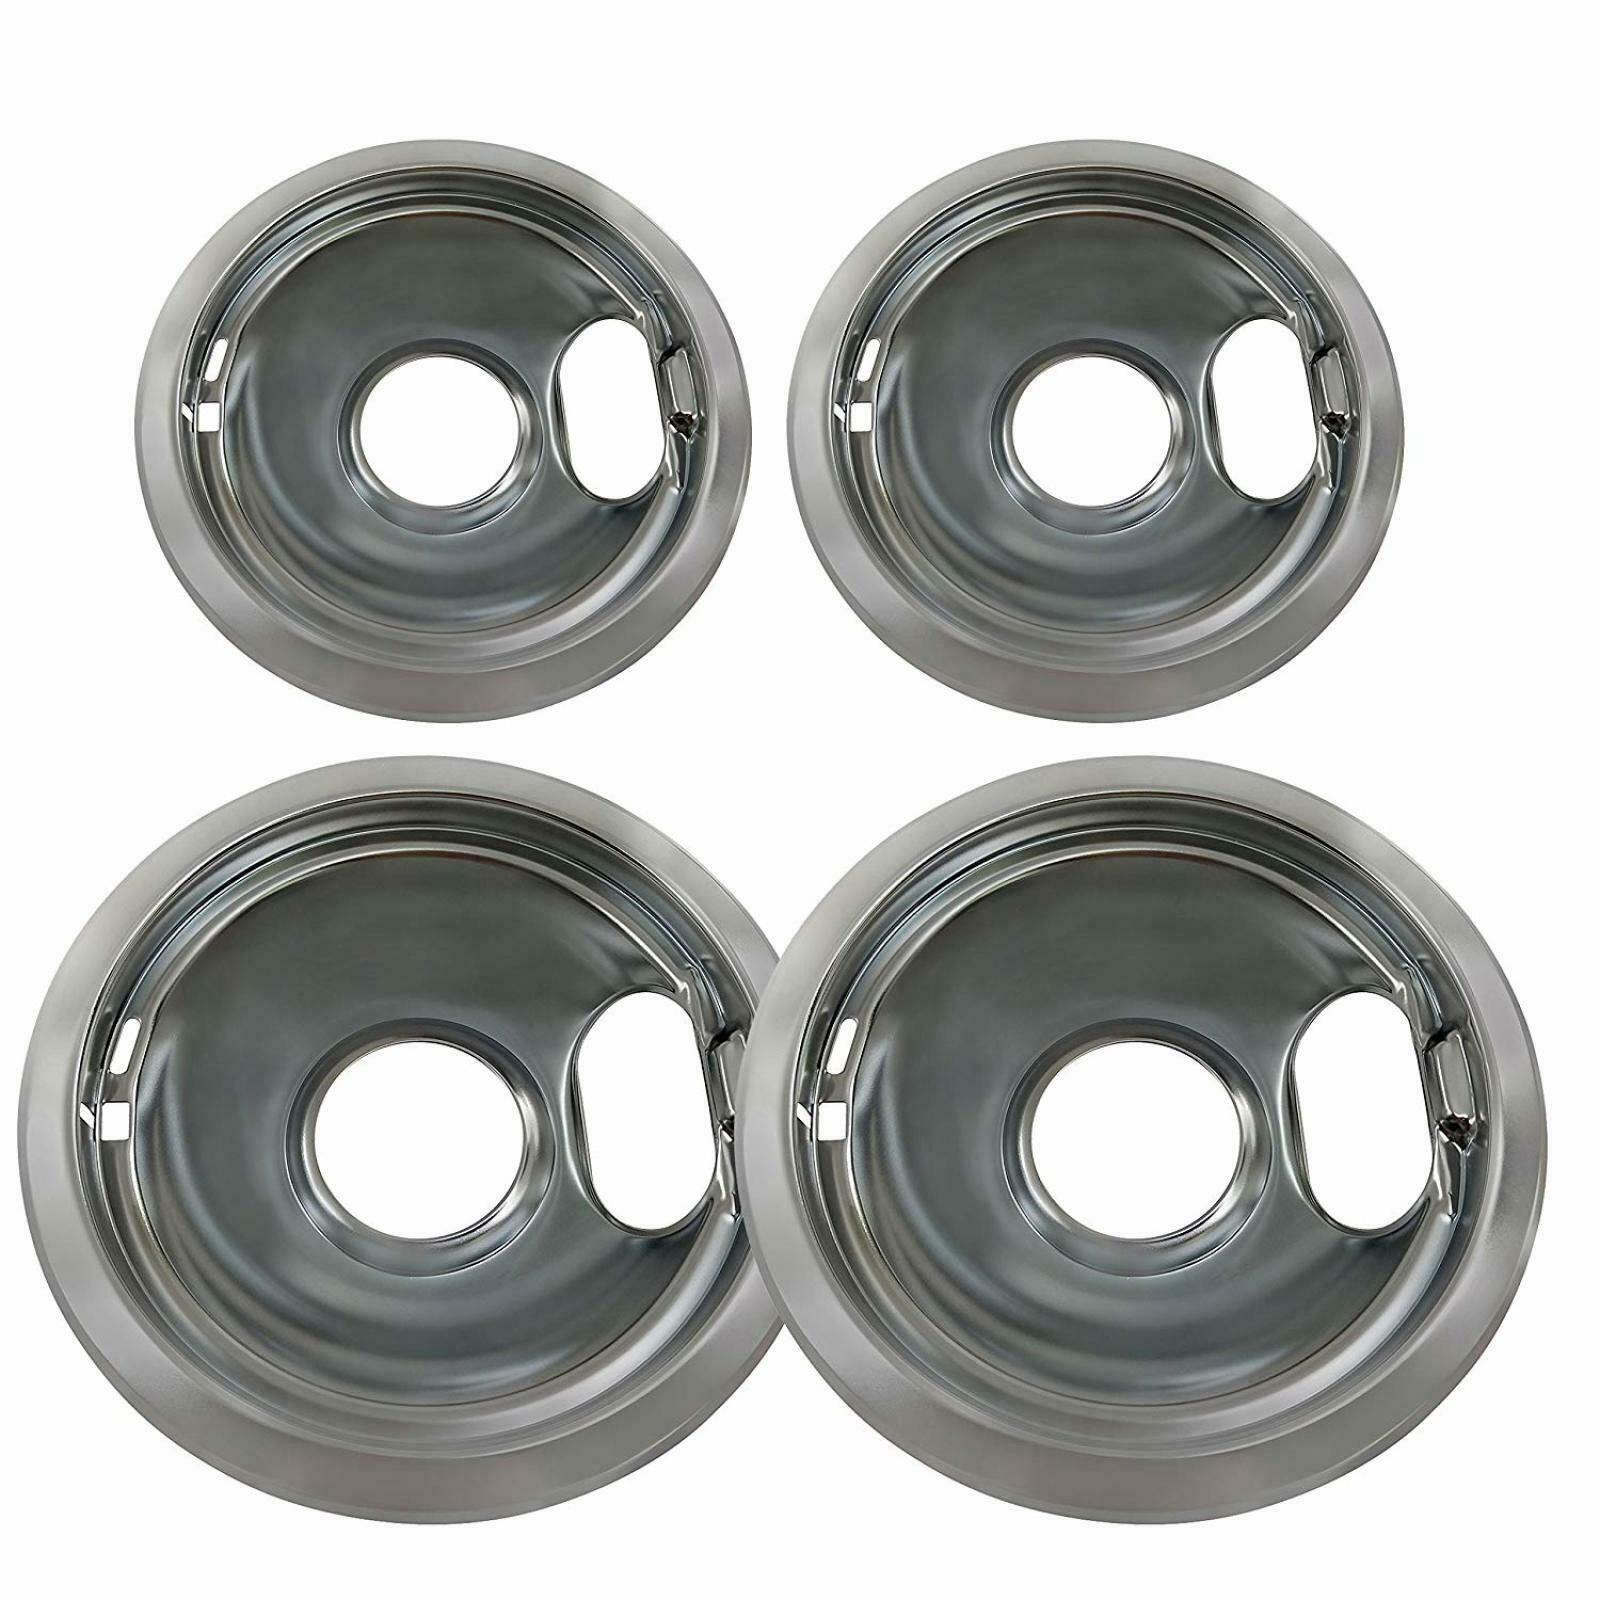 Replacement for Whirlpool W10278125 Electric Range Chrome Reflector Bowls 4 Pack